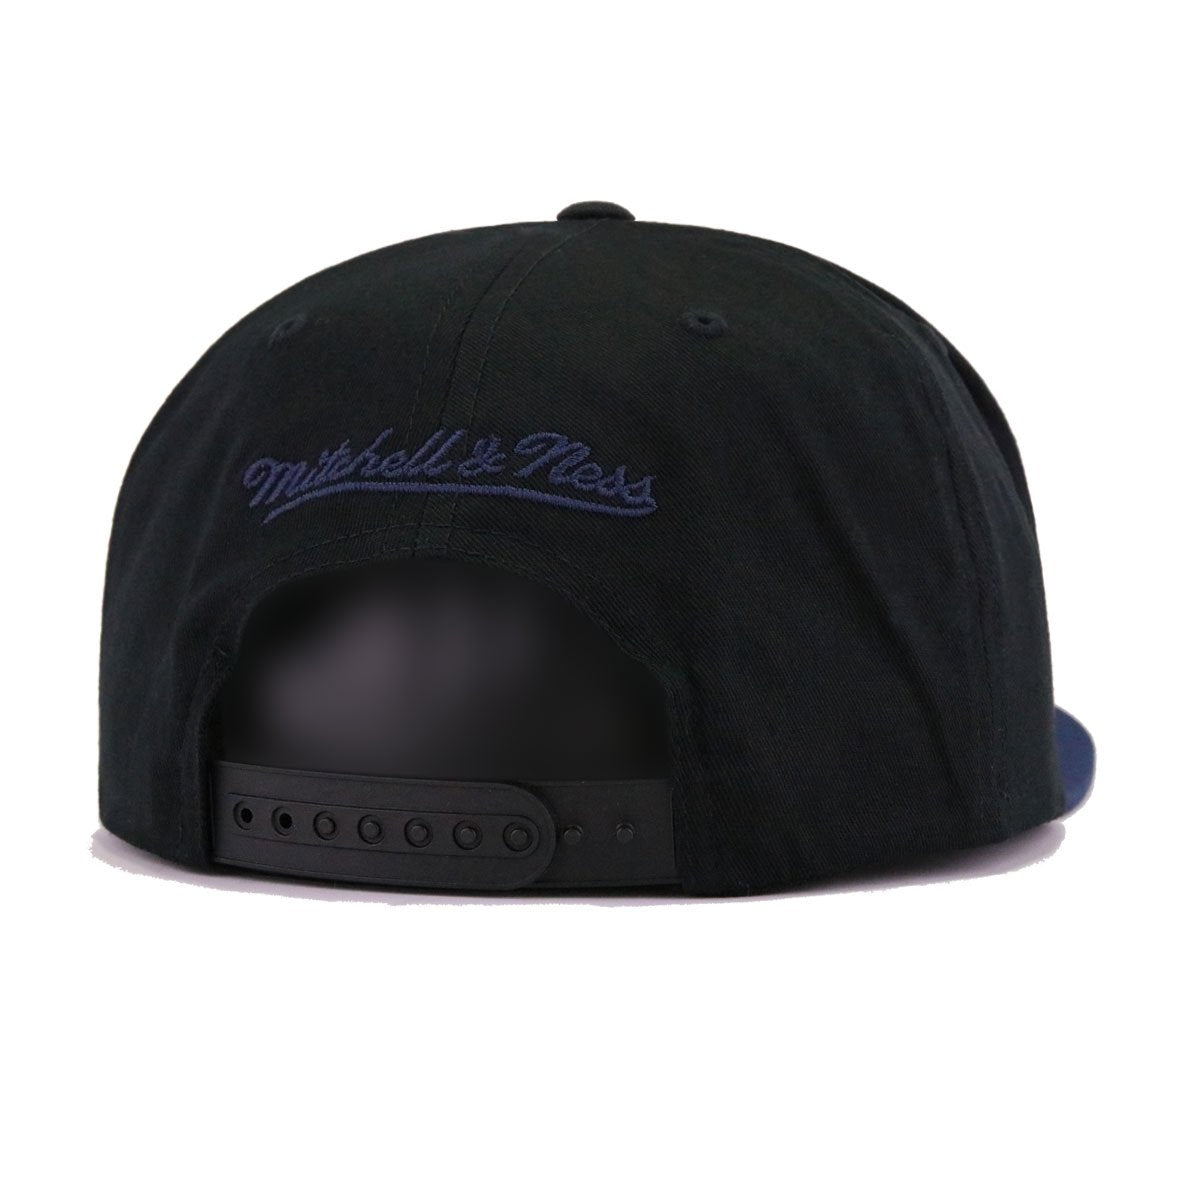 Denver Nuggets Black Navy Mitchell and Ness Flexfit Snapback